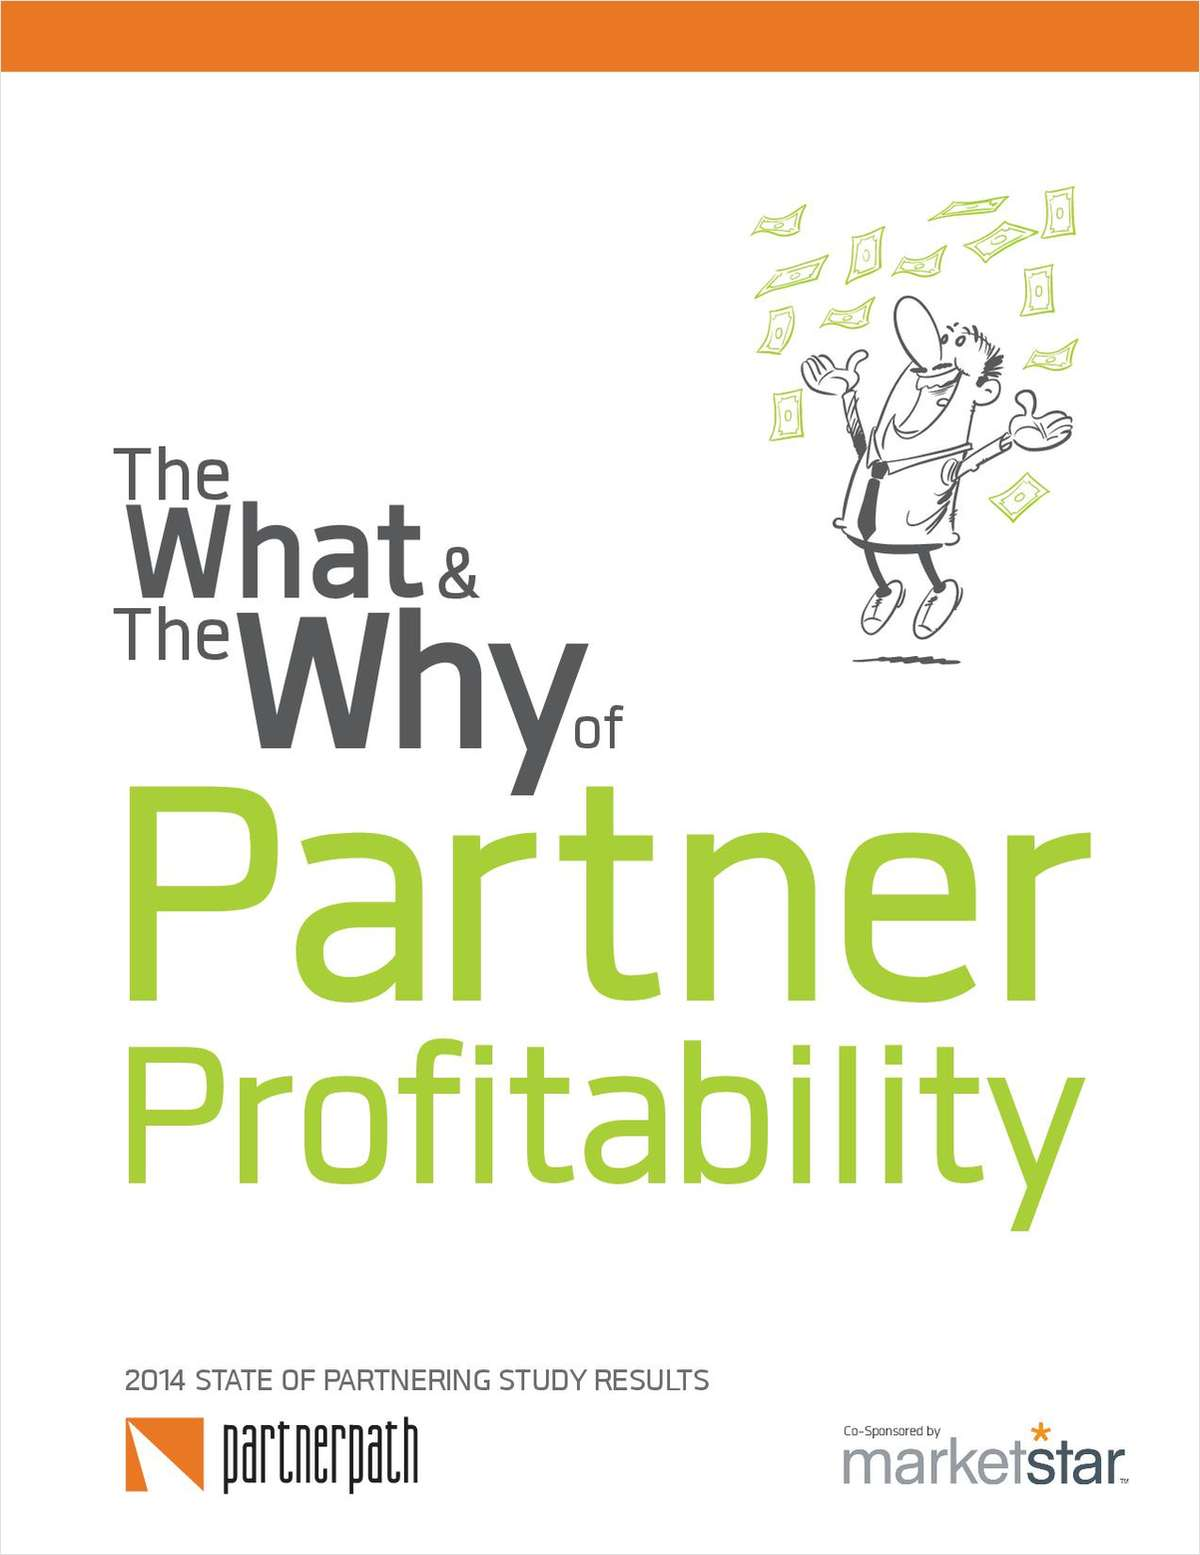 The What & The Why of Partner Profitability